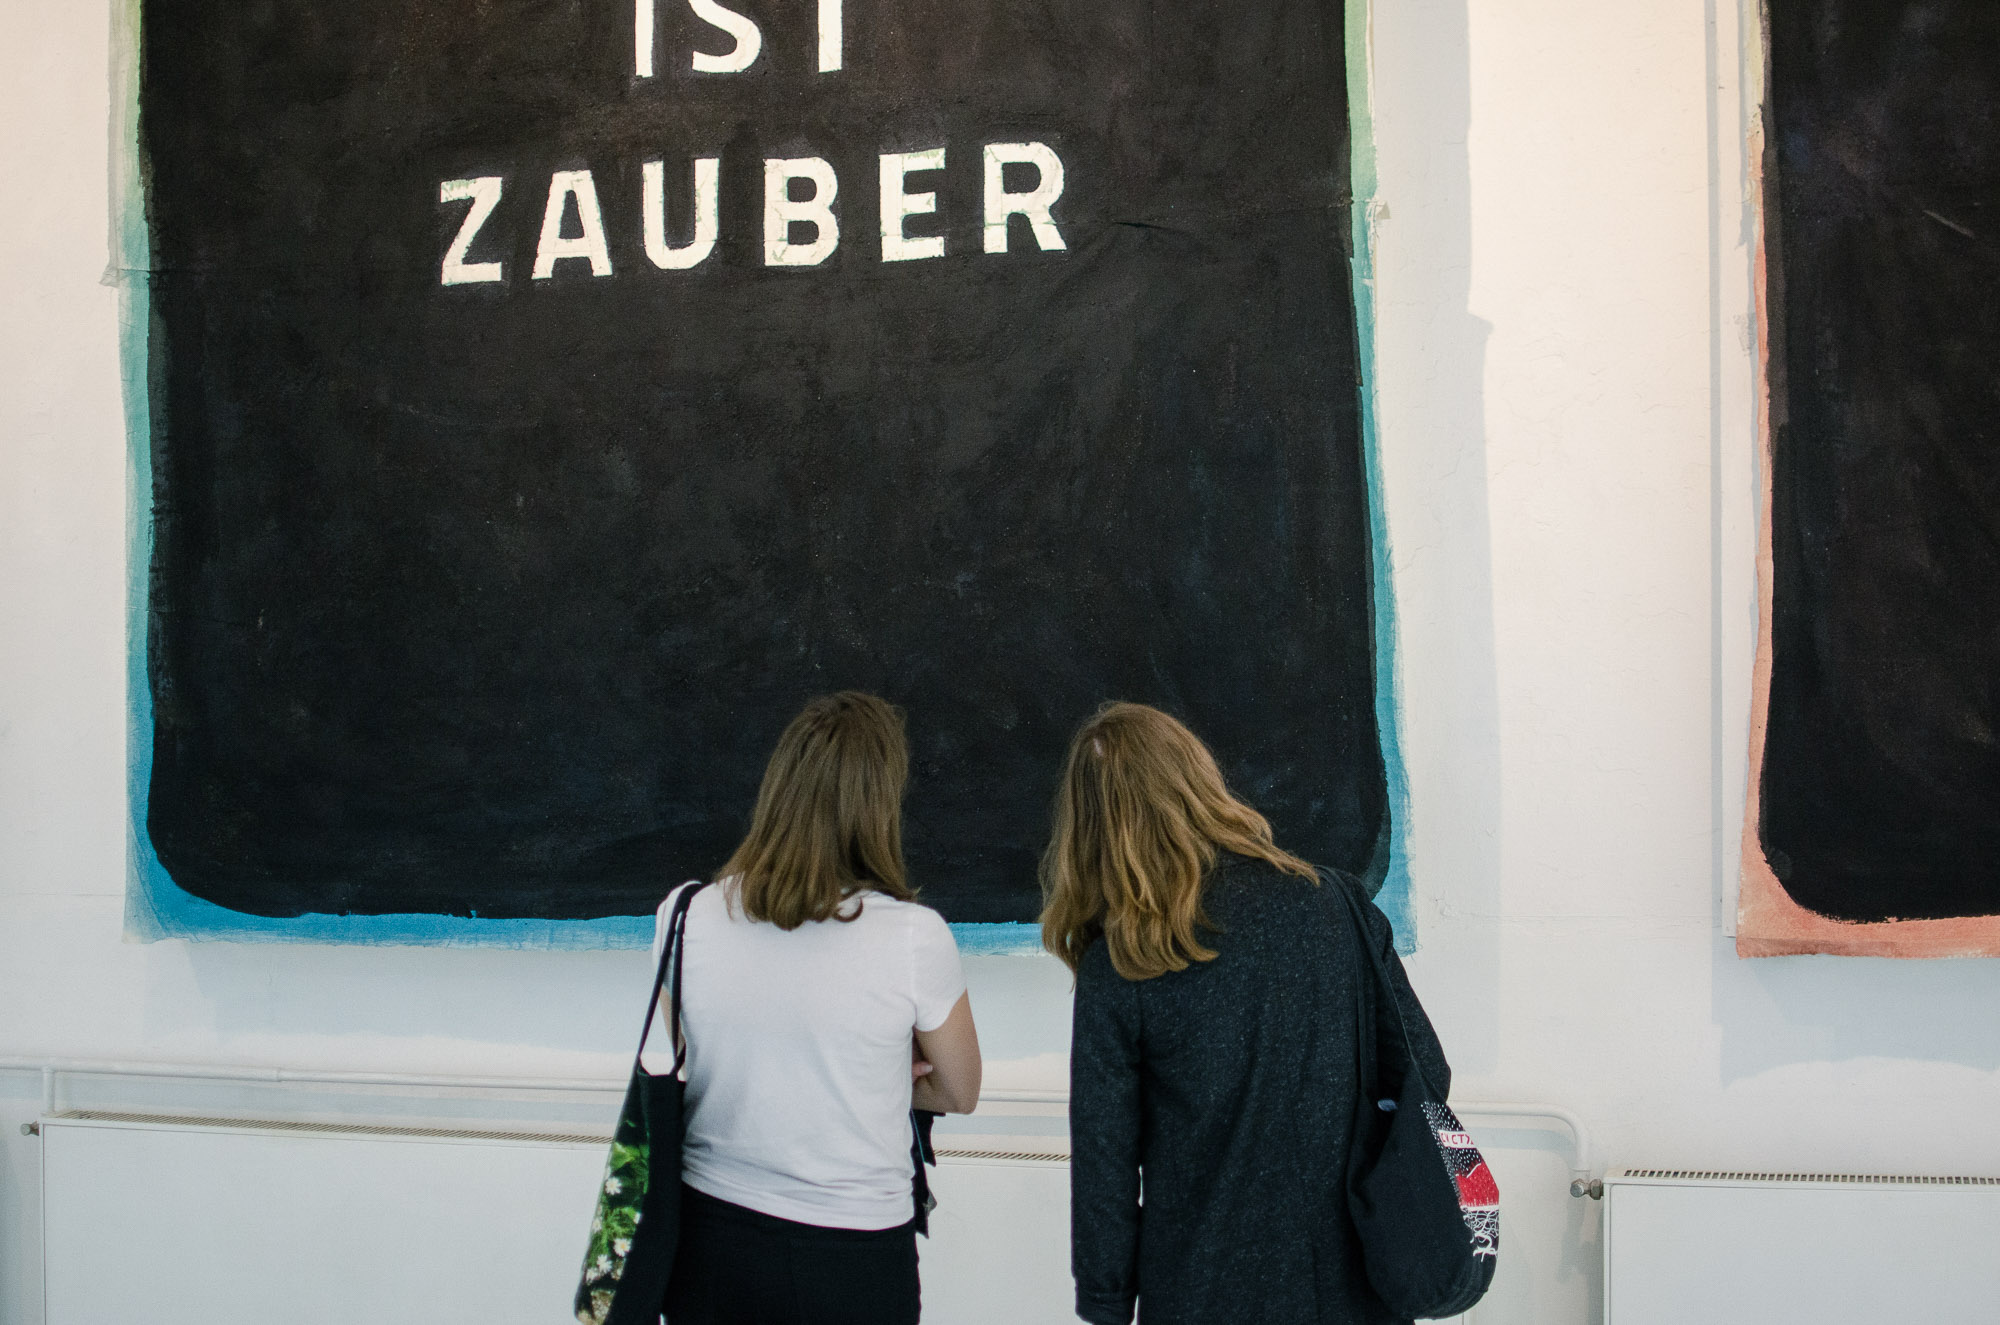 PKRD-48-Airy-Democratic-Spirituality-vernissage-PK-at-Alte-Handlesschule-20.08.21-Fanni-Papp-for-PK-6